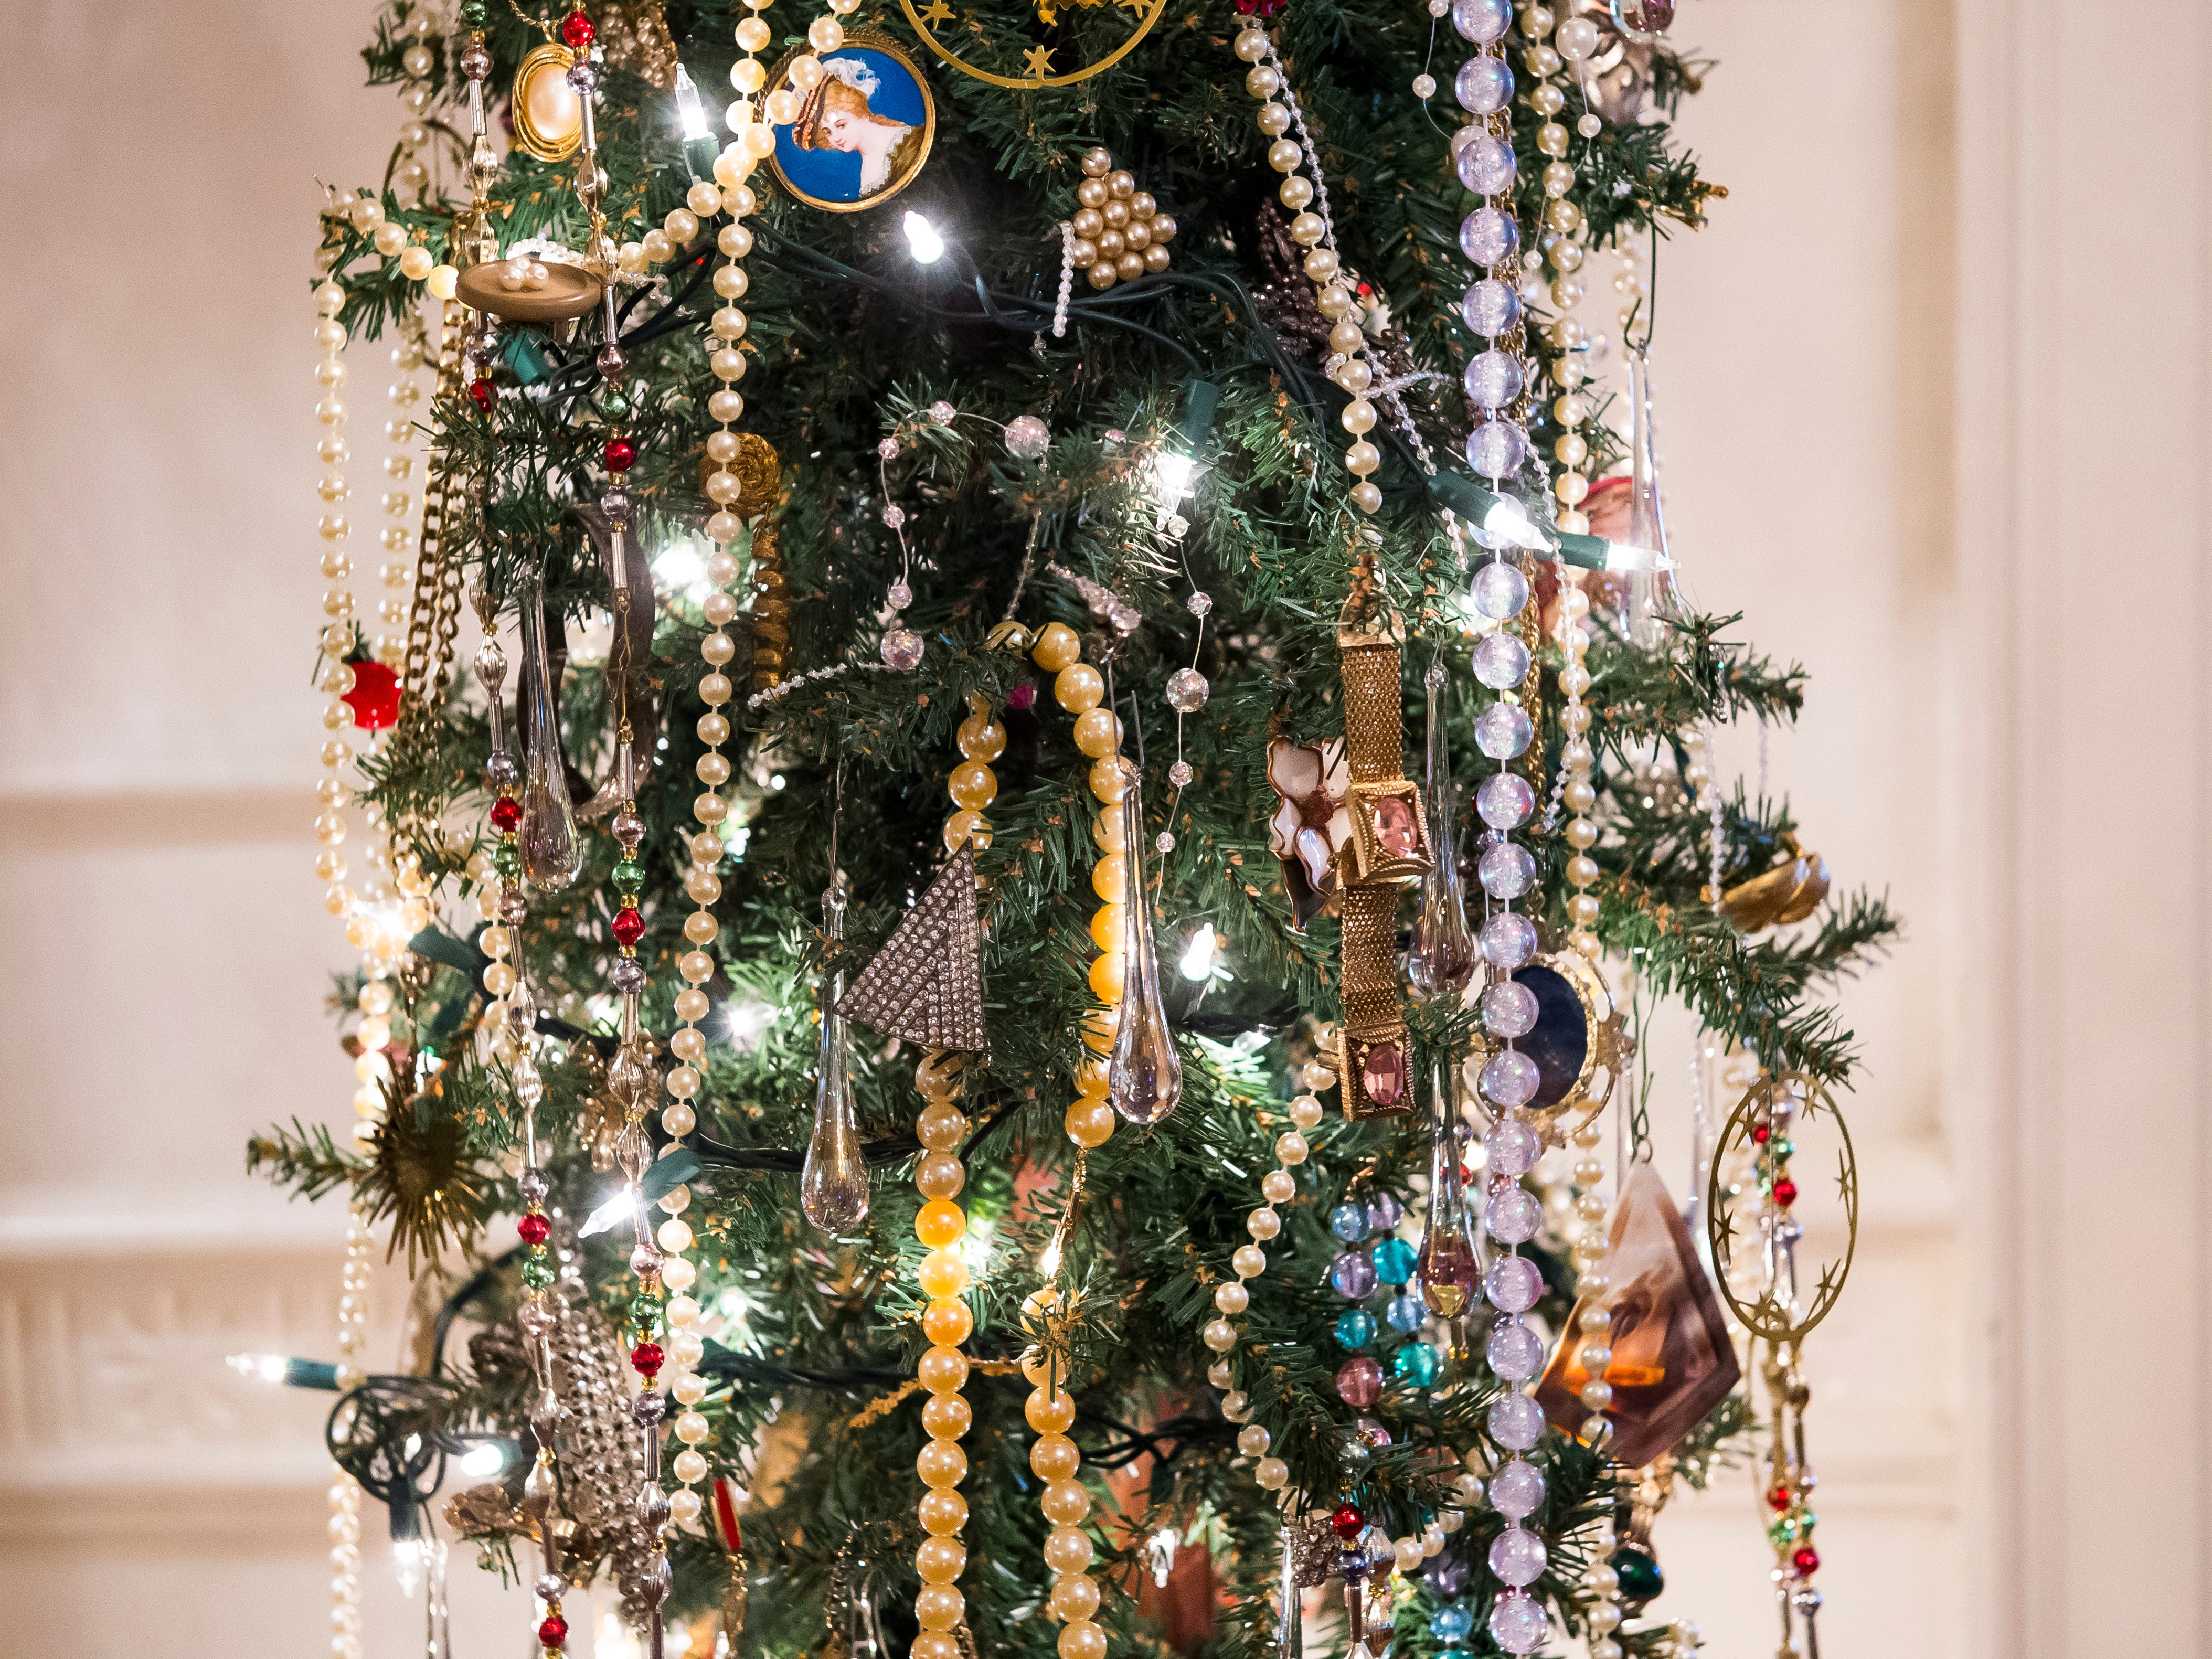 A tree decorated with jewelry is one of over 40 Christmas trees on display at the Warehime-Myers Mansion in Hanover. Tree tours are currently being offered and a schedule can be found on the Hanover Area Historical Society's Facebook page.